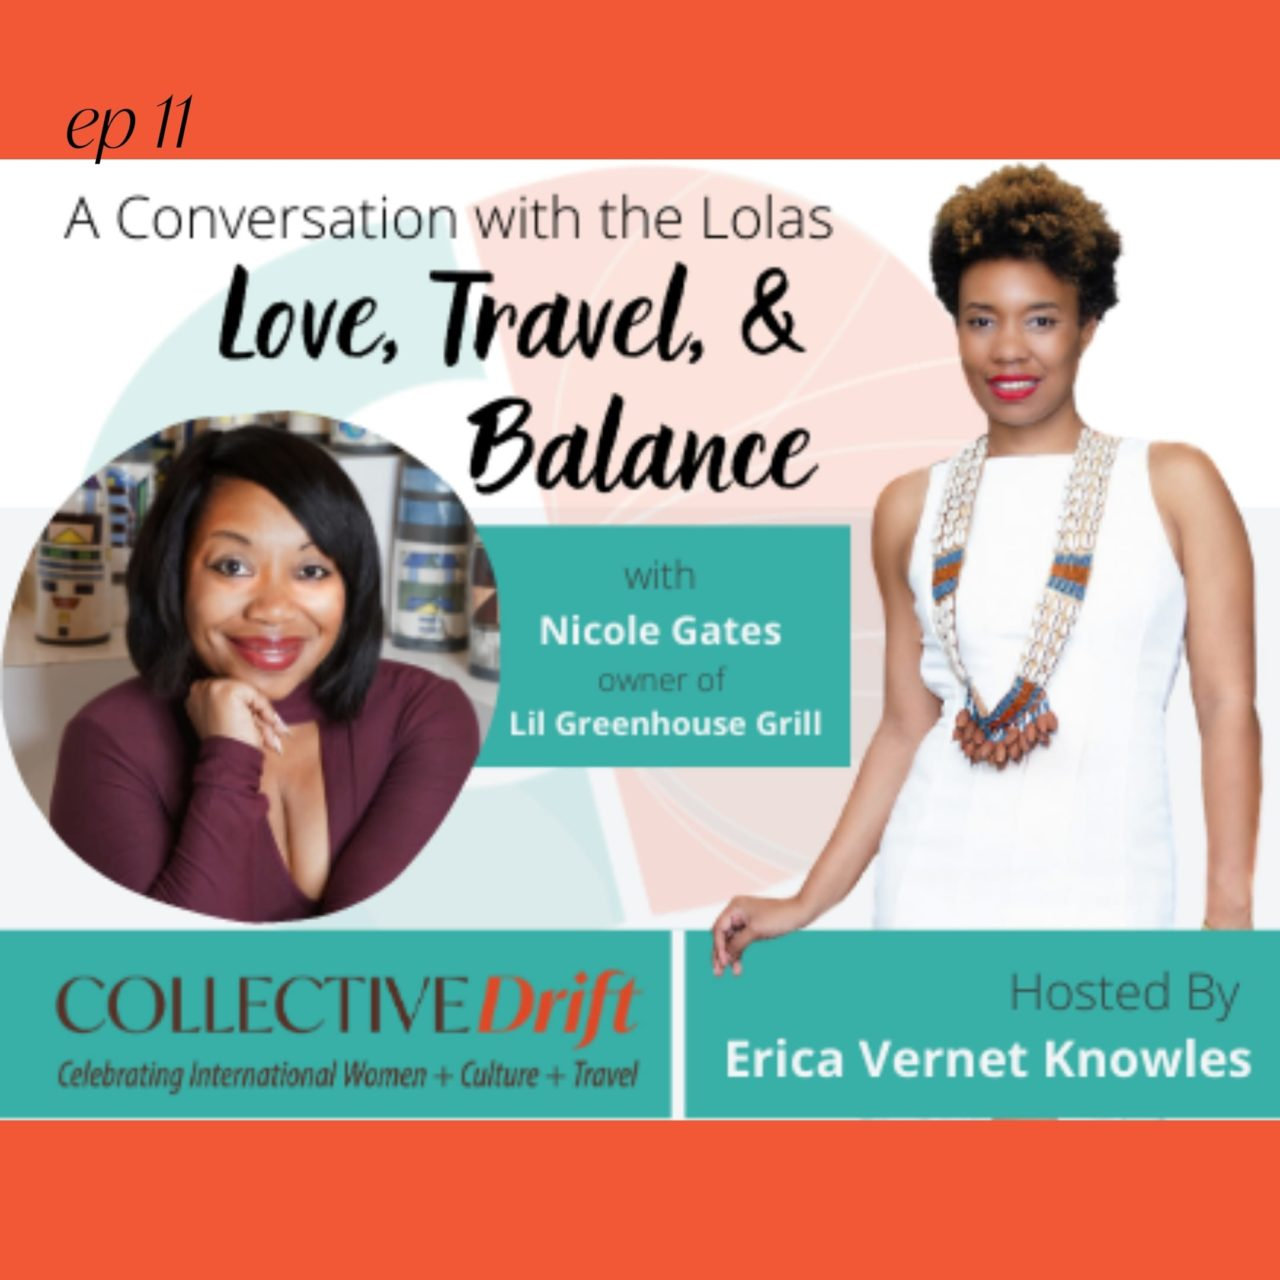 (ep 11) Love, travel and balance with Nicole Gates, owner of Lil Greenhouse Grill